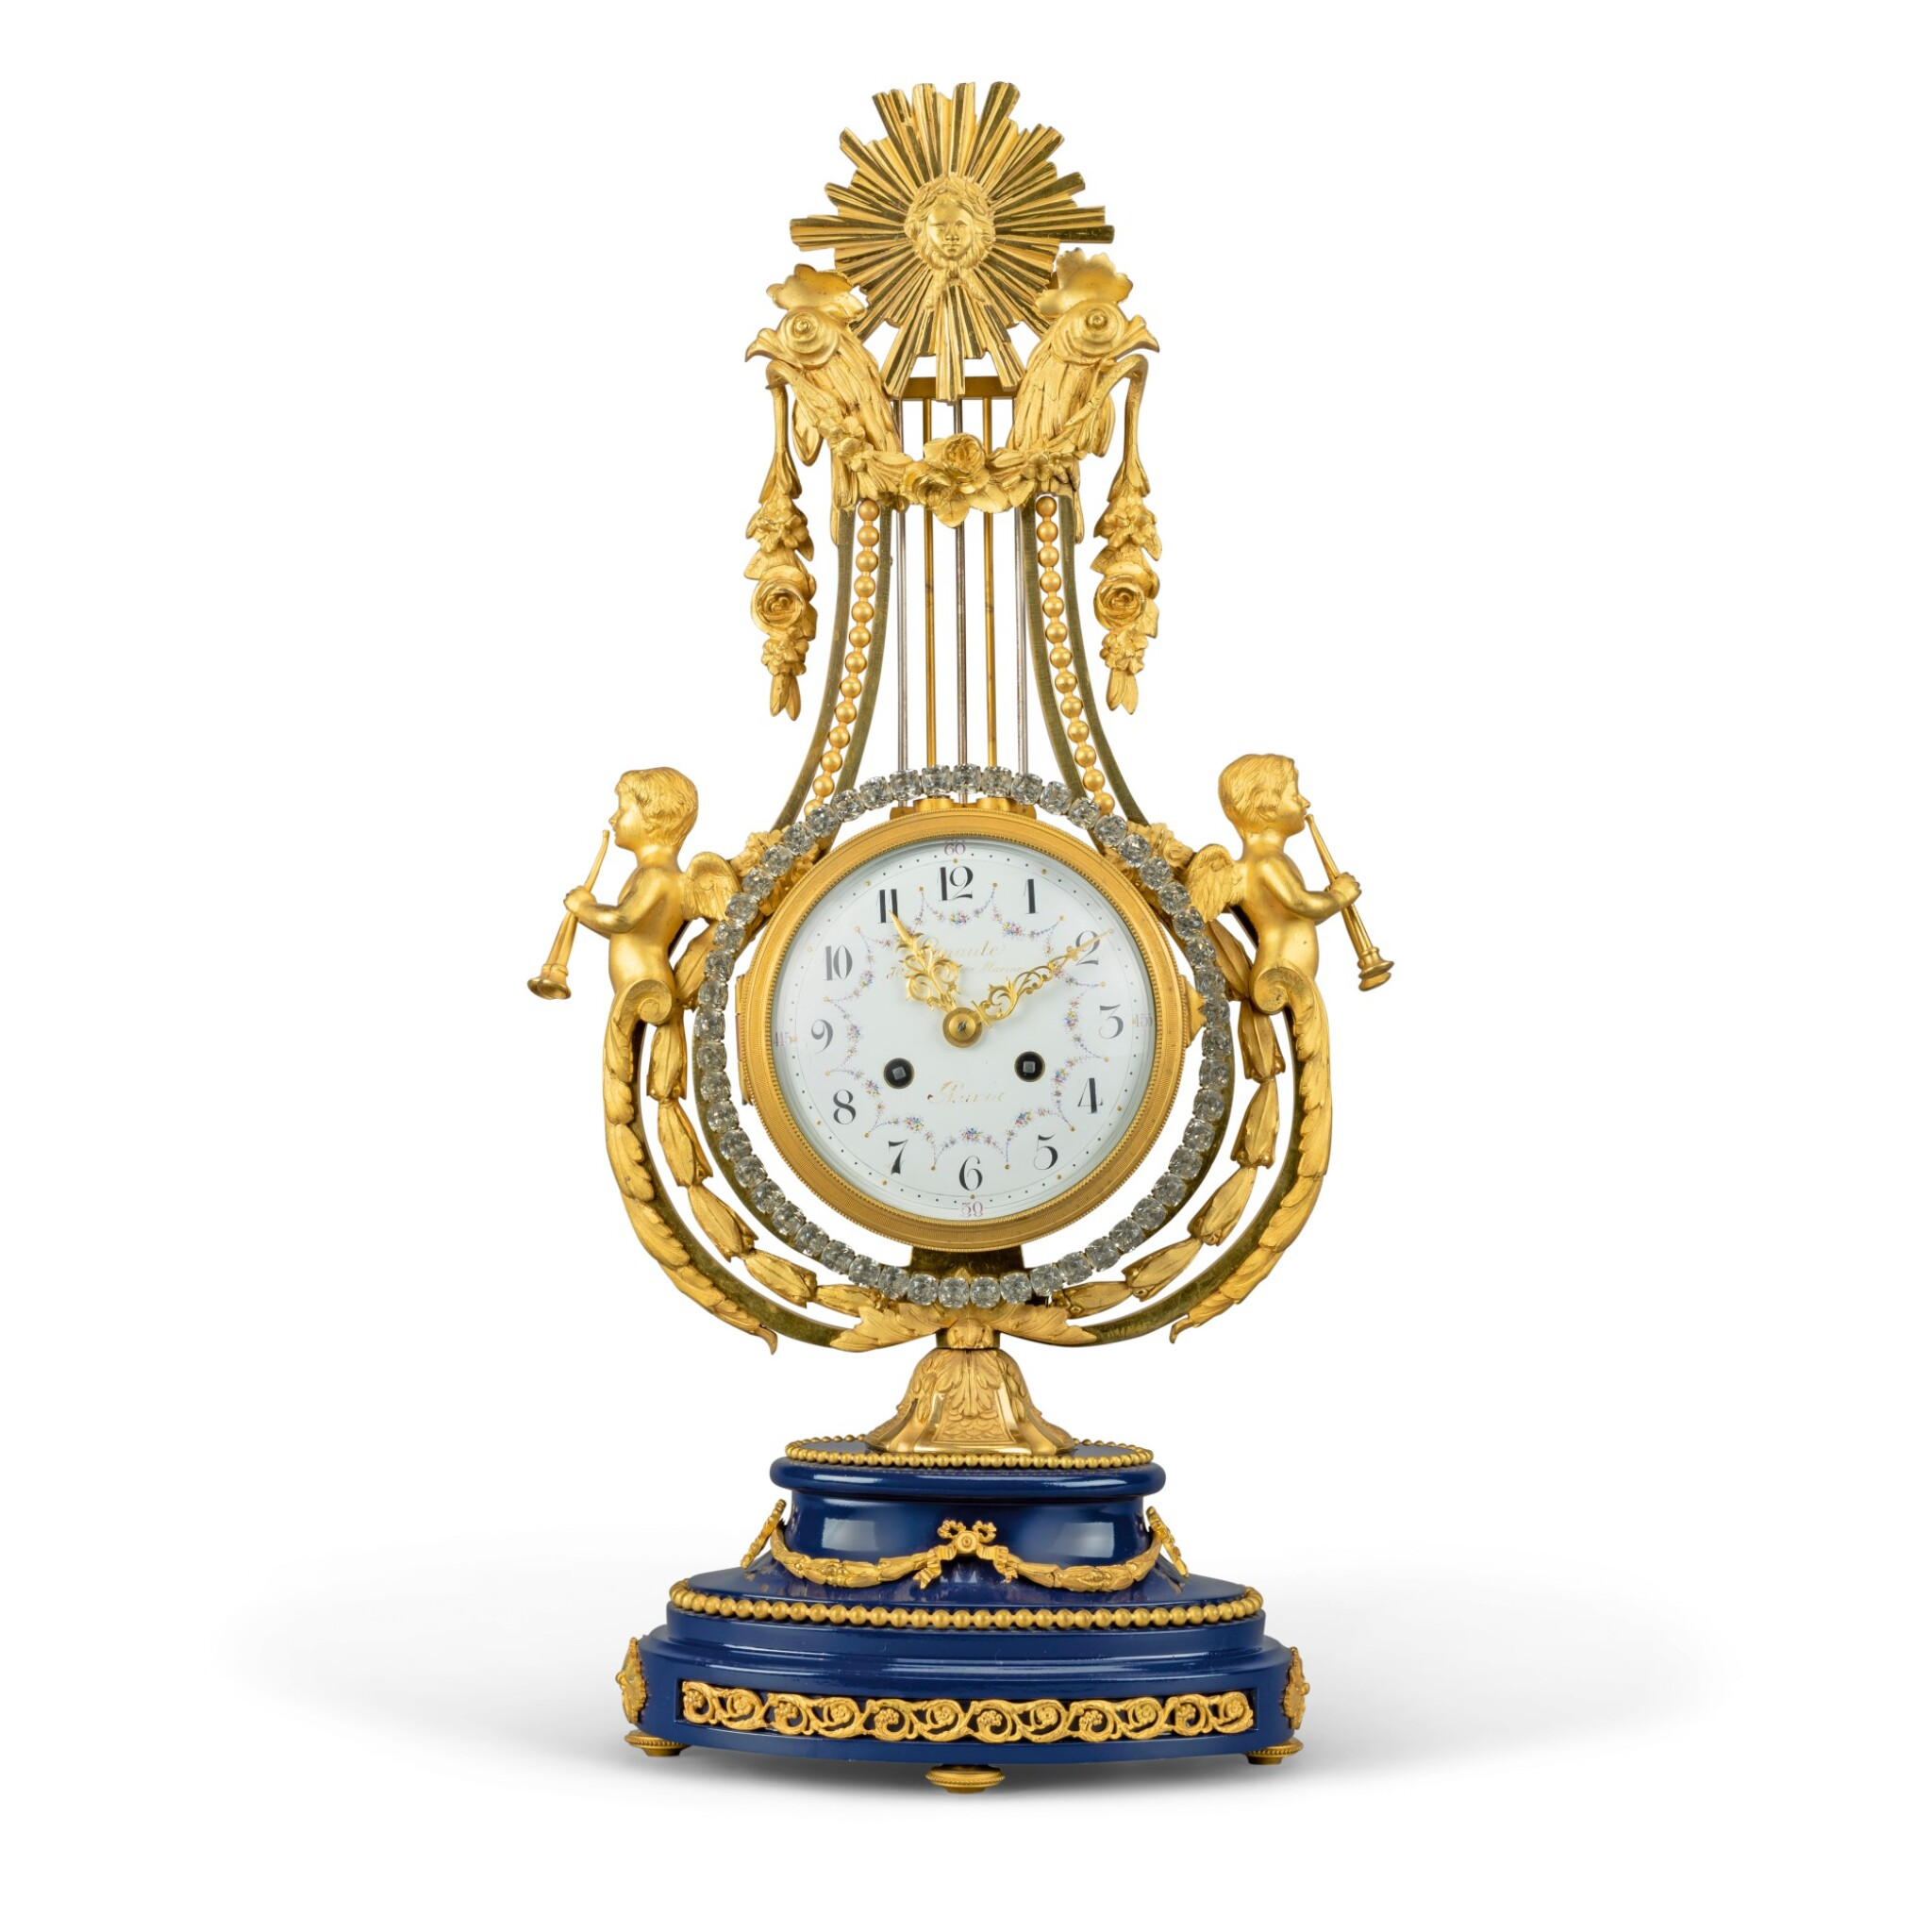 View full screen - View 1 of Lot 45. A LOUIS XVI-STYLE GILT-BRONZE LYRE CLOCK, FRENCH, CIRCA 1880.